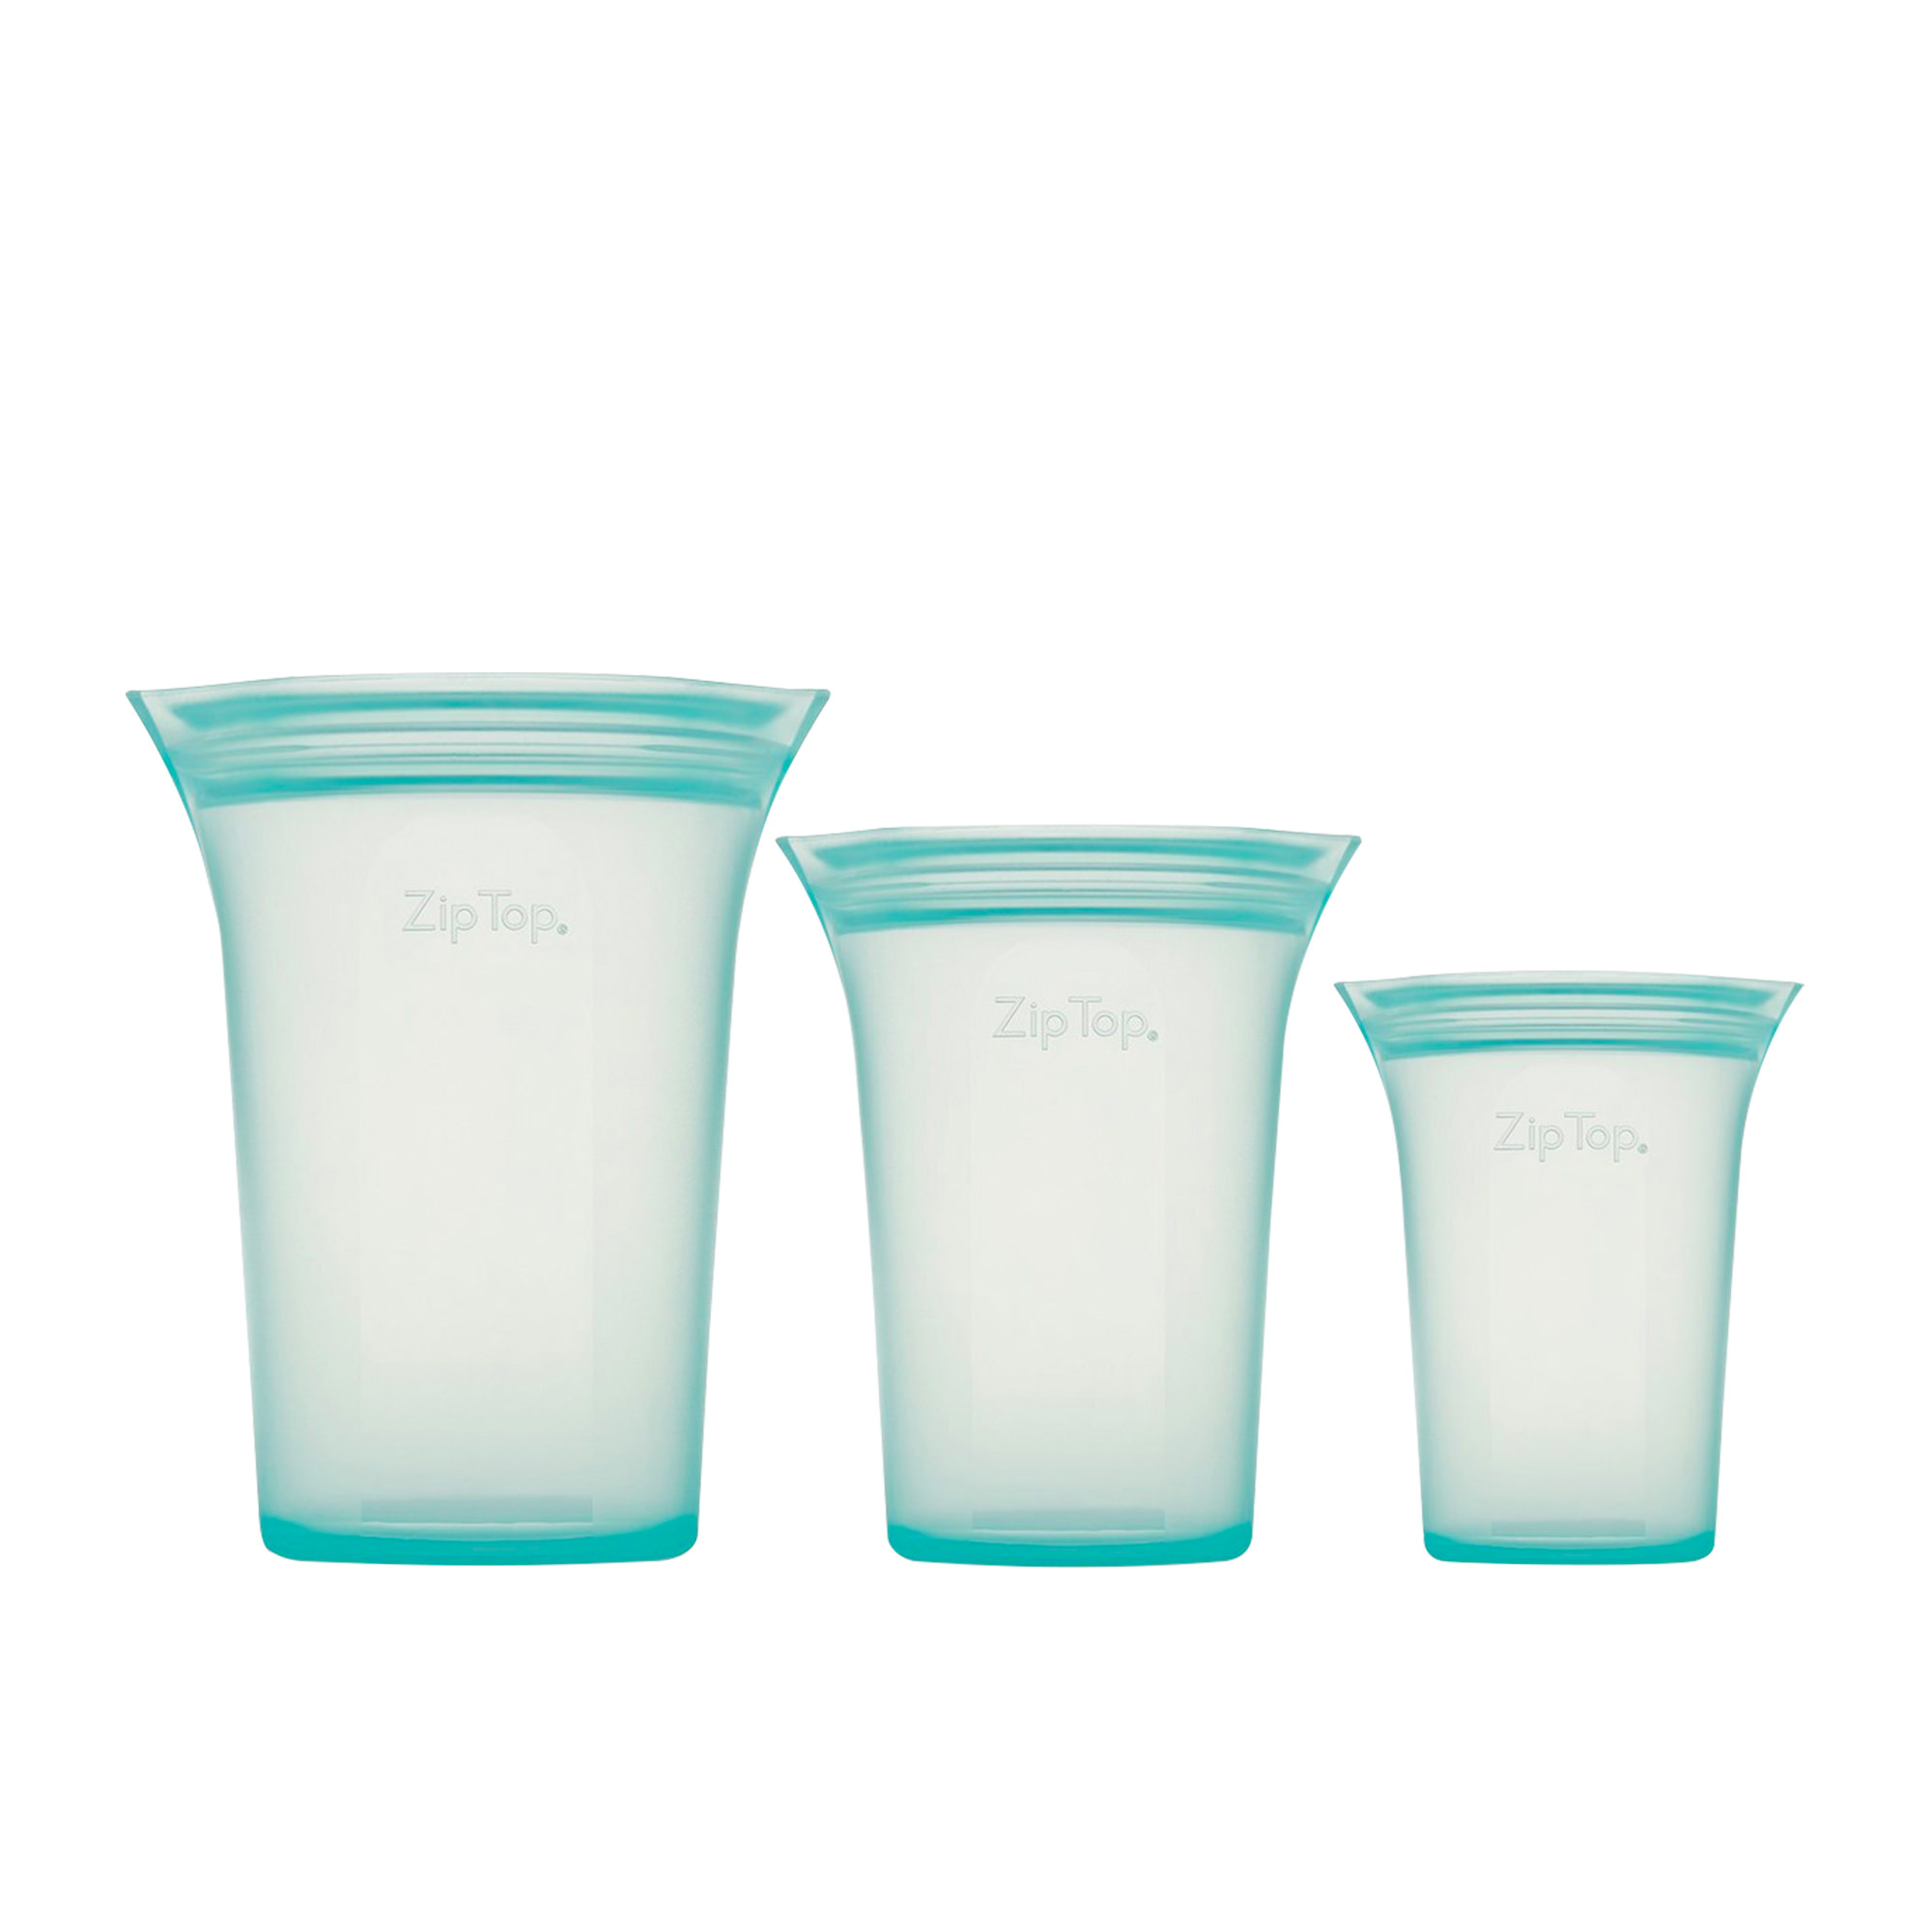 Zip Top 3pc Platinum Silicone Cup Container Set Teal